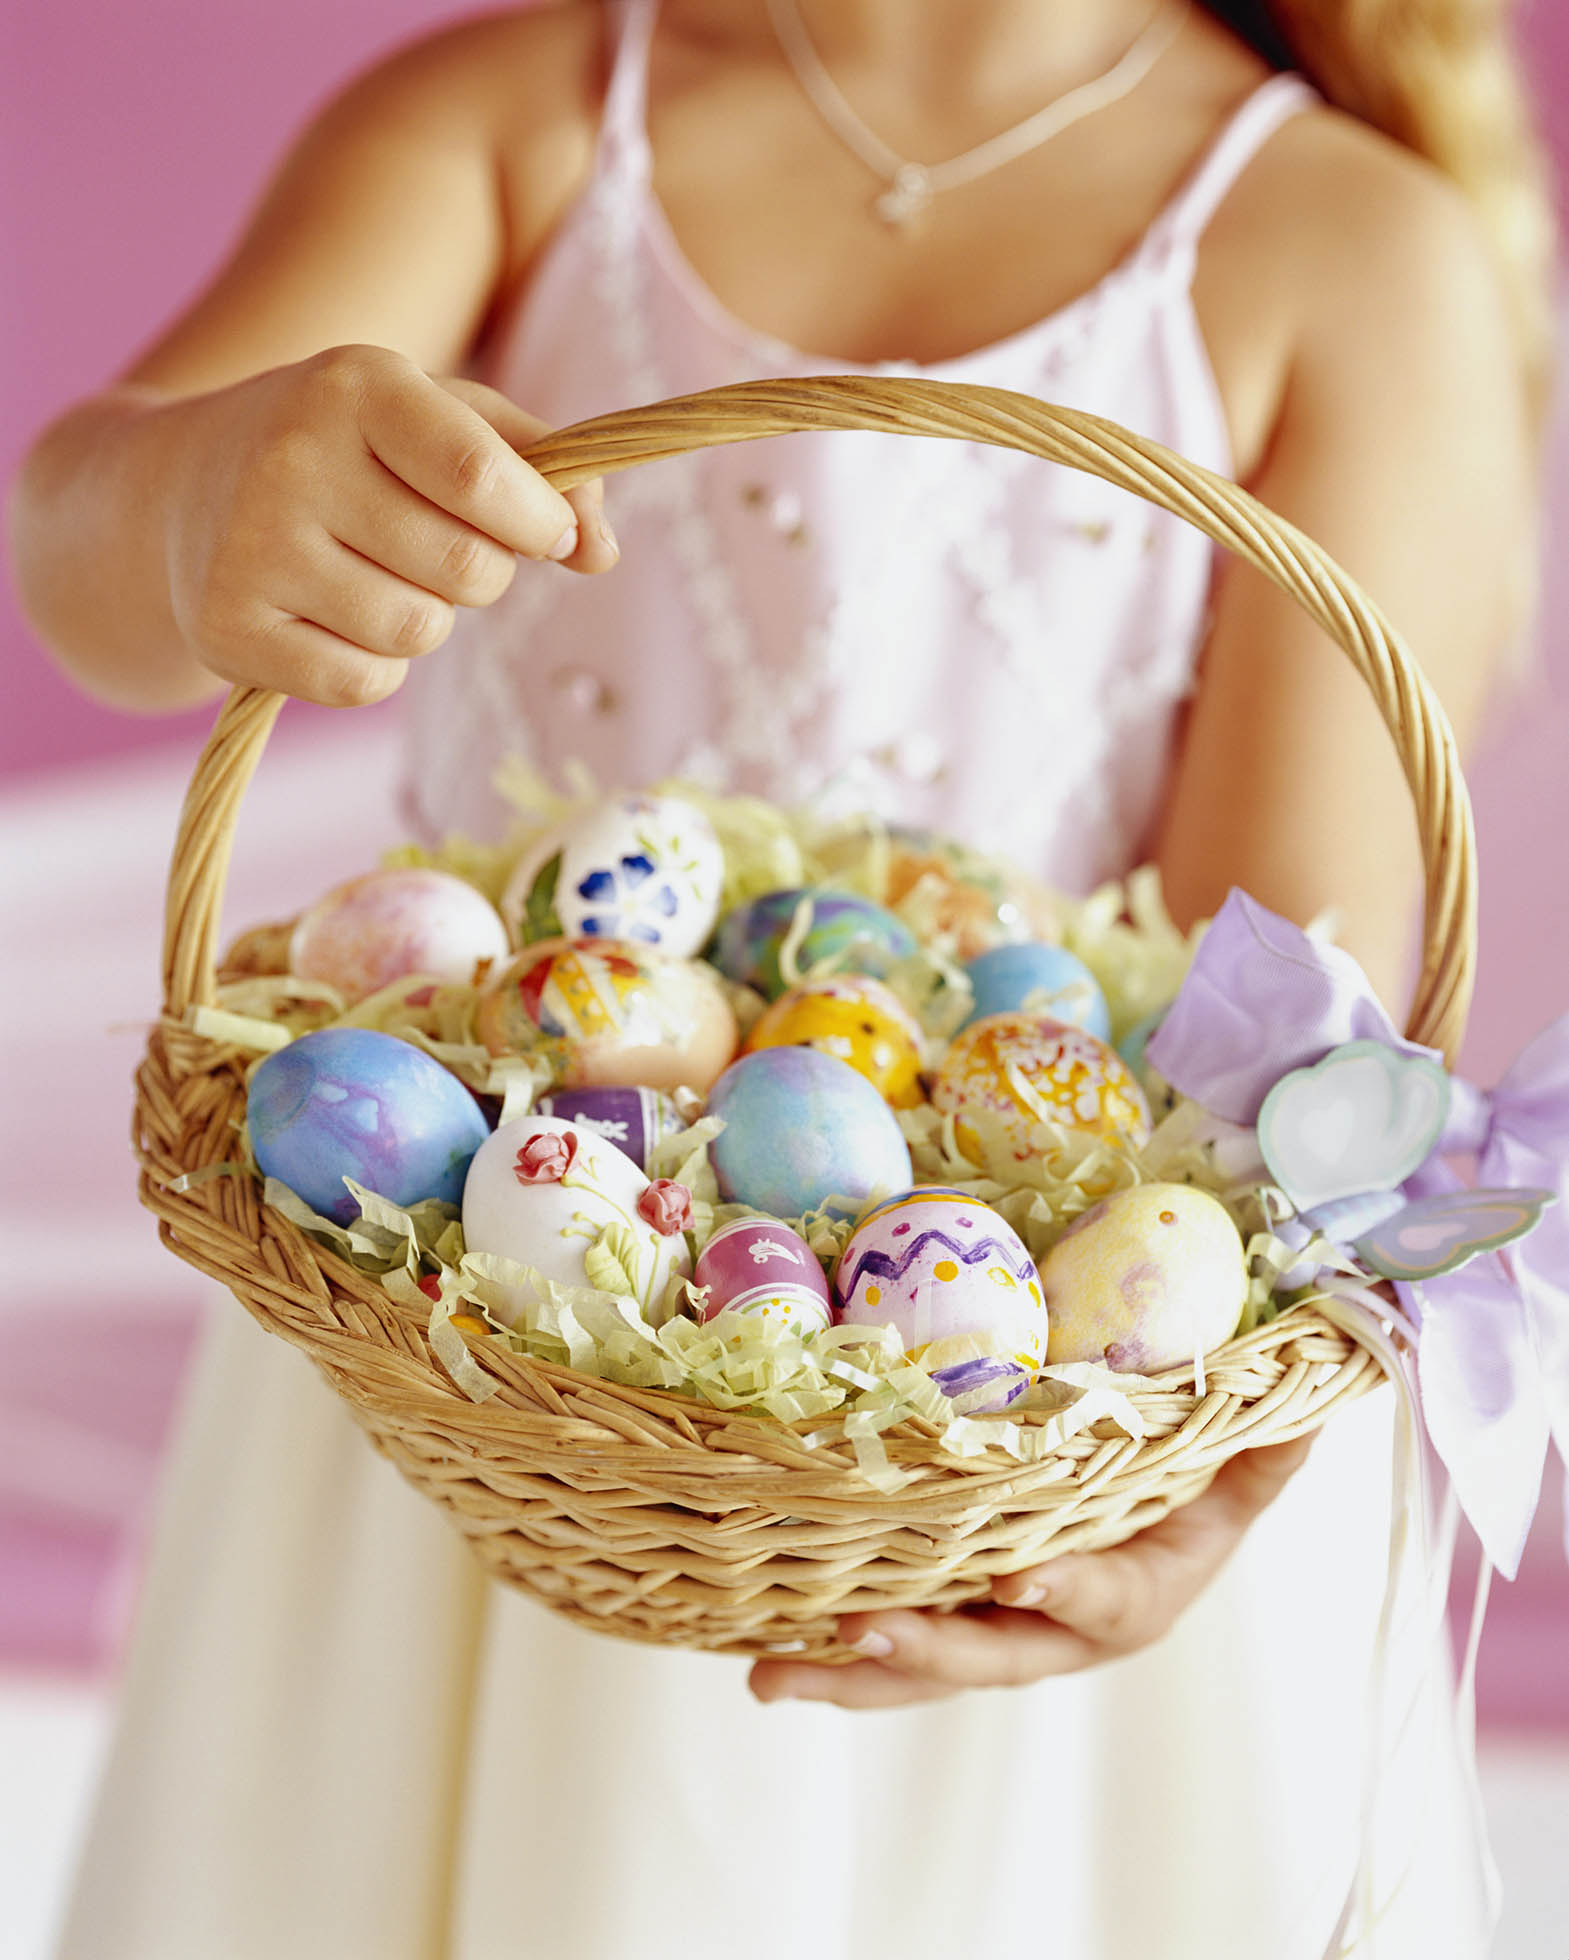 Easter Promos 2018: Fun Treats and Staycations |